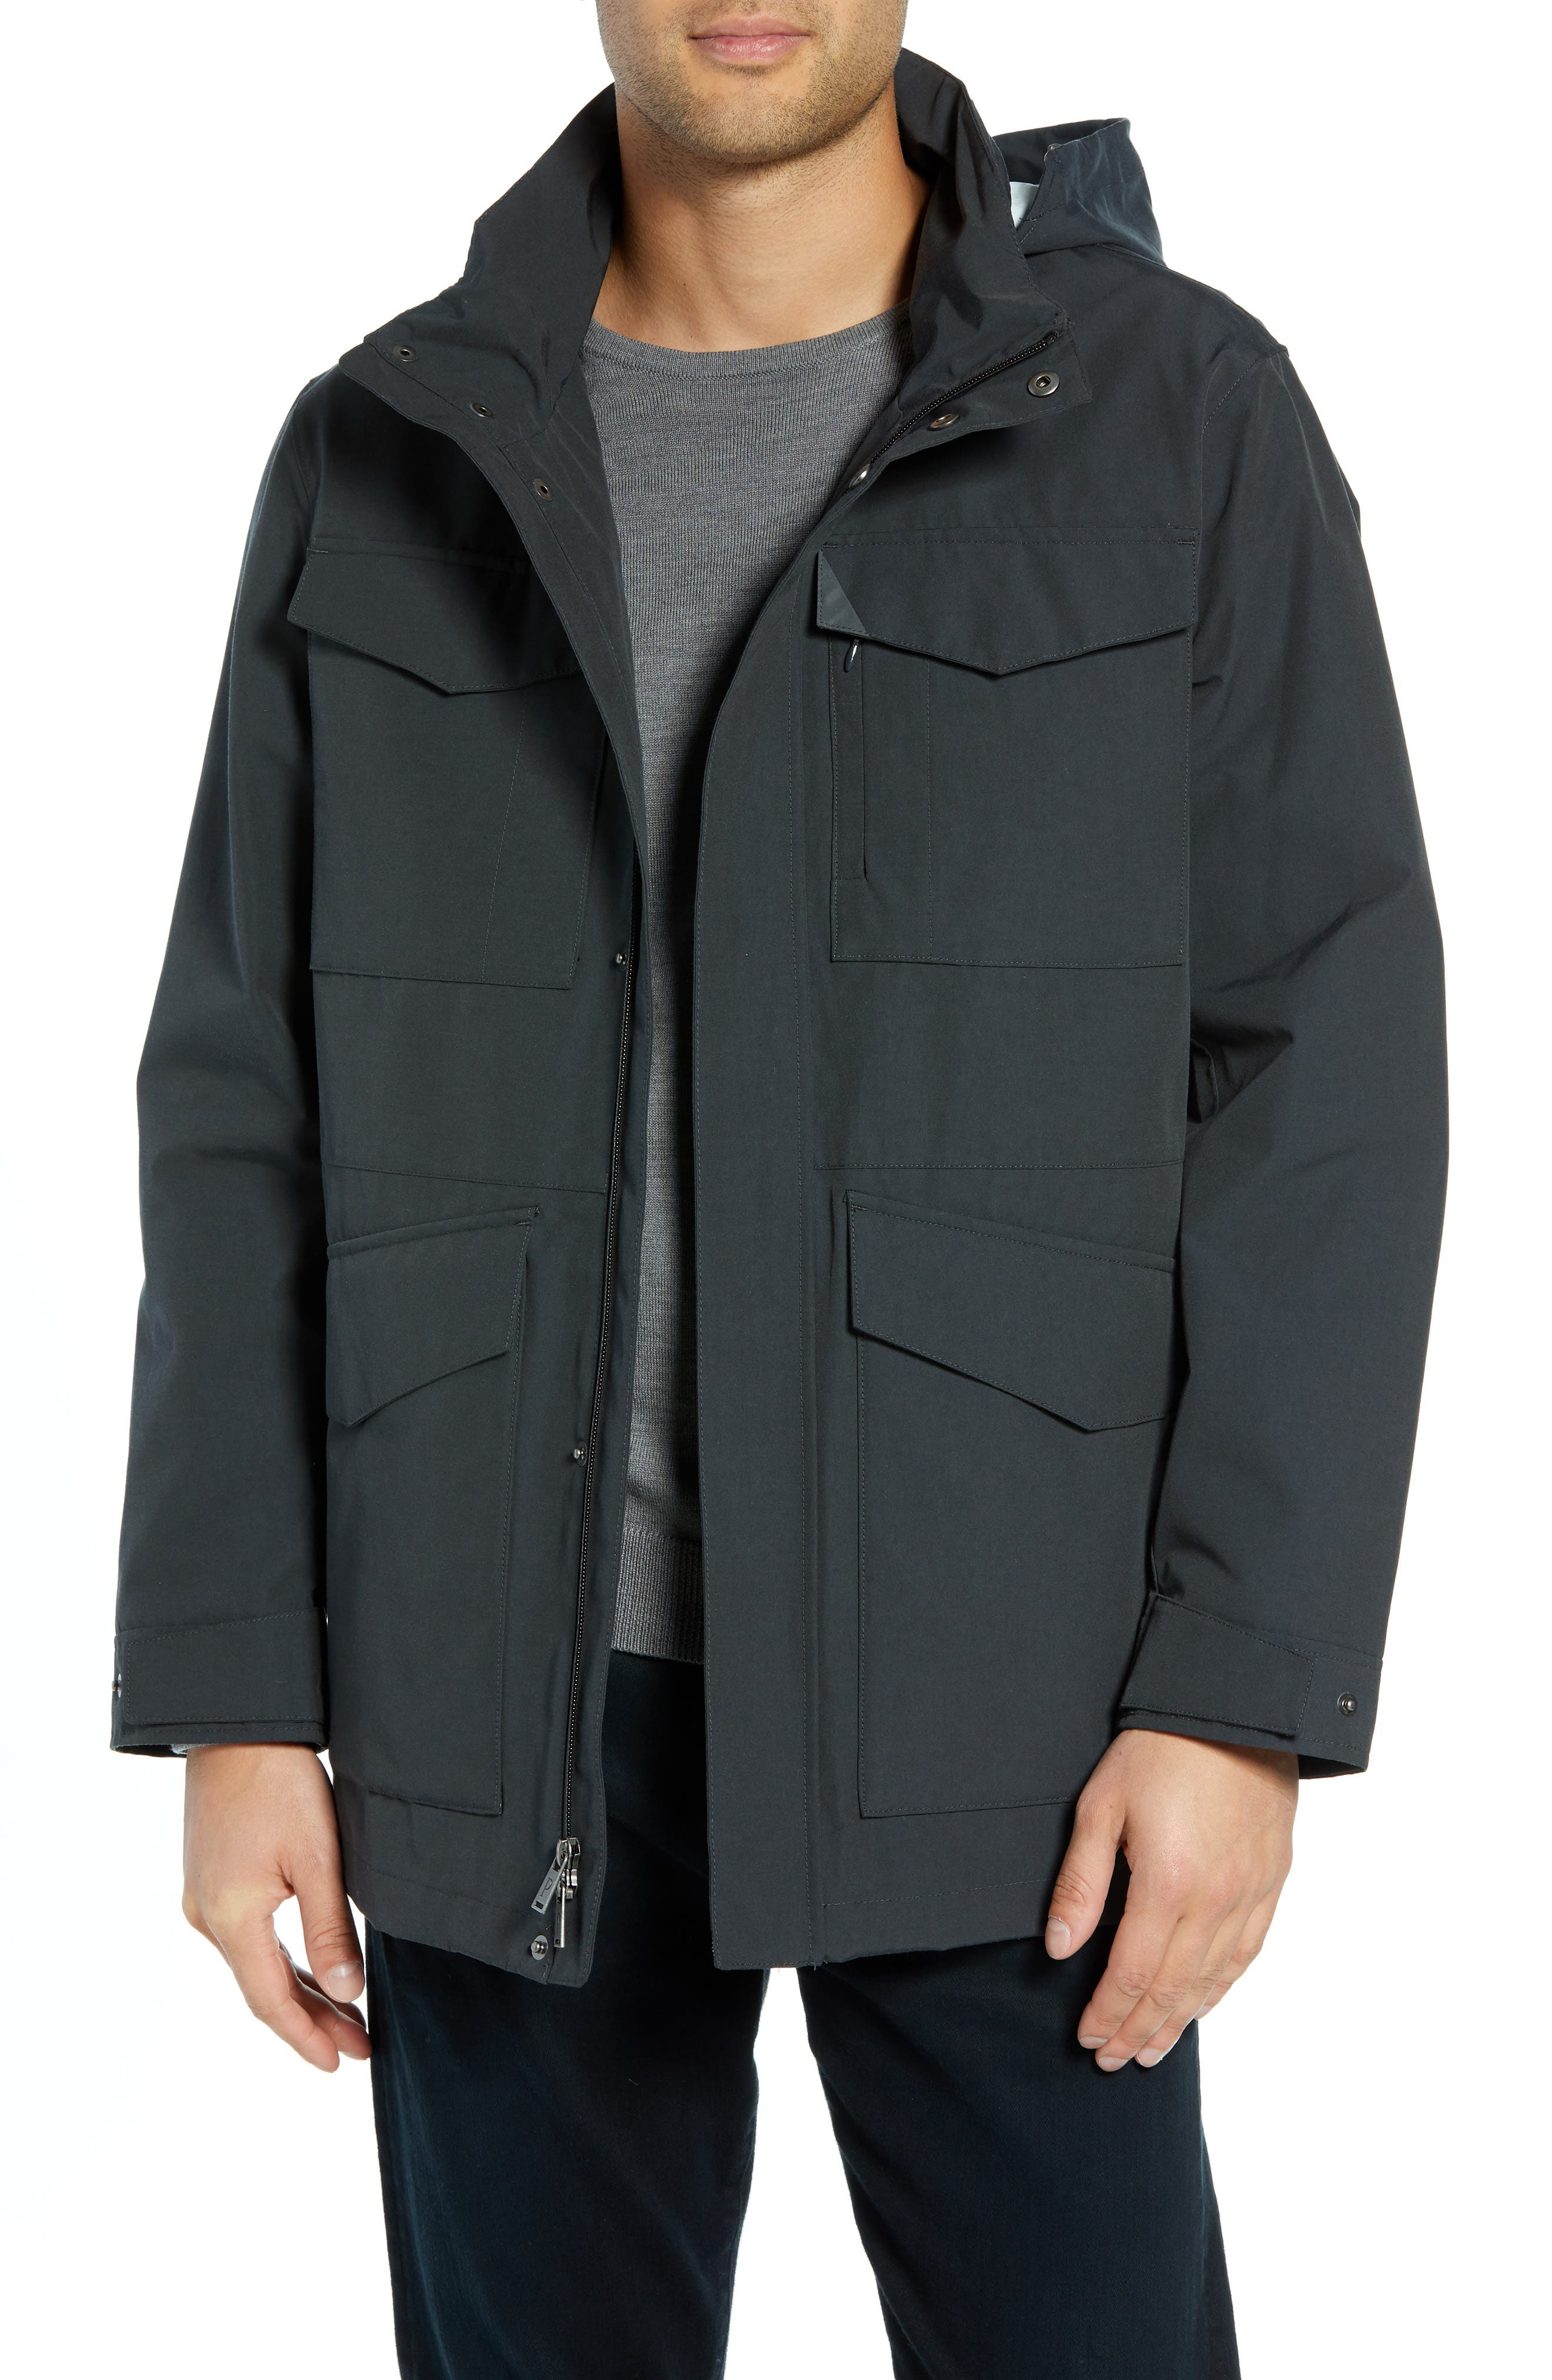 Clyde Hill Commuter Coat,                         Main,                         color, SLATE